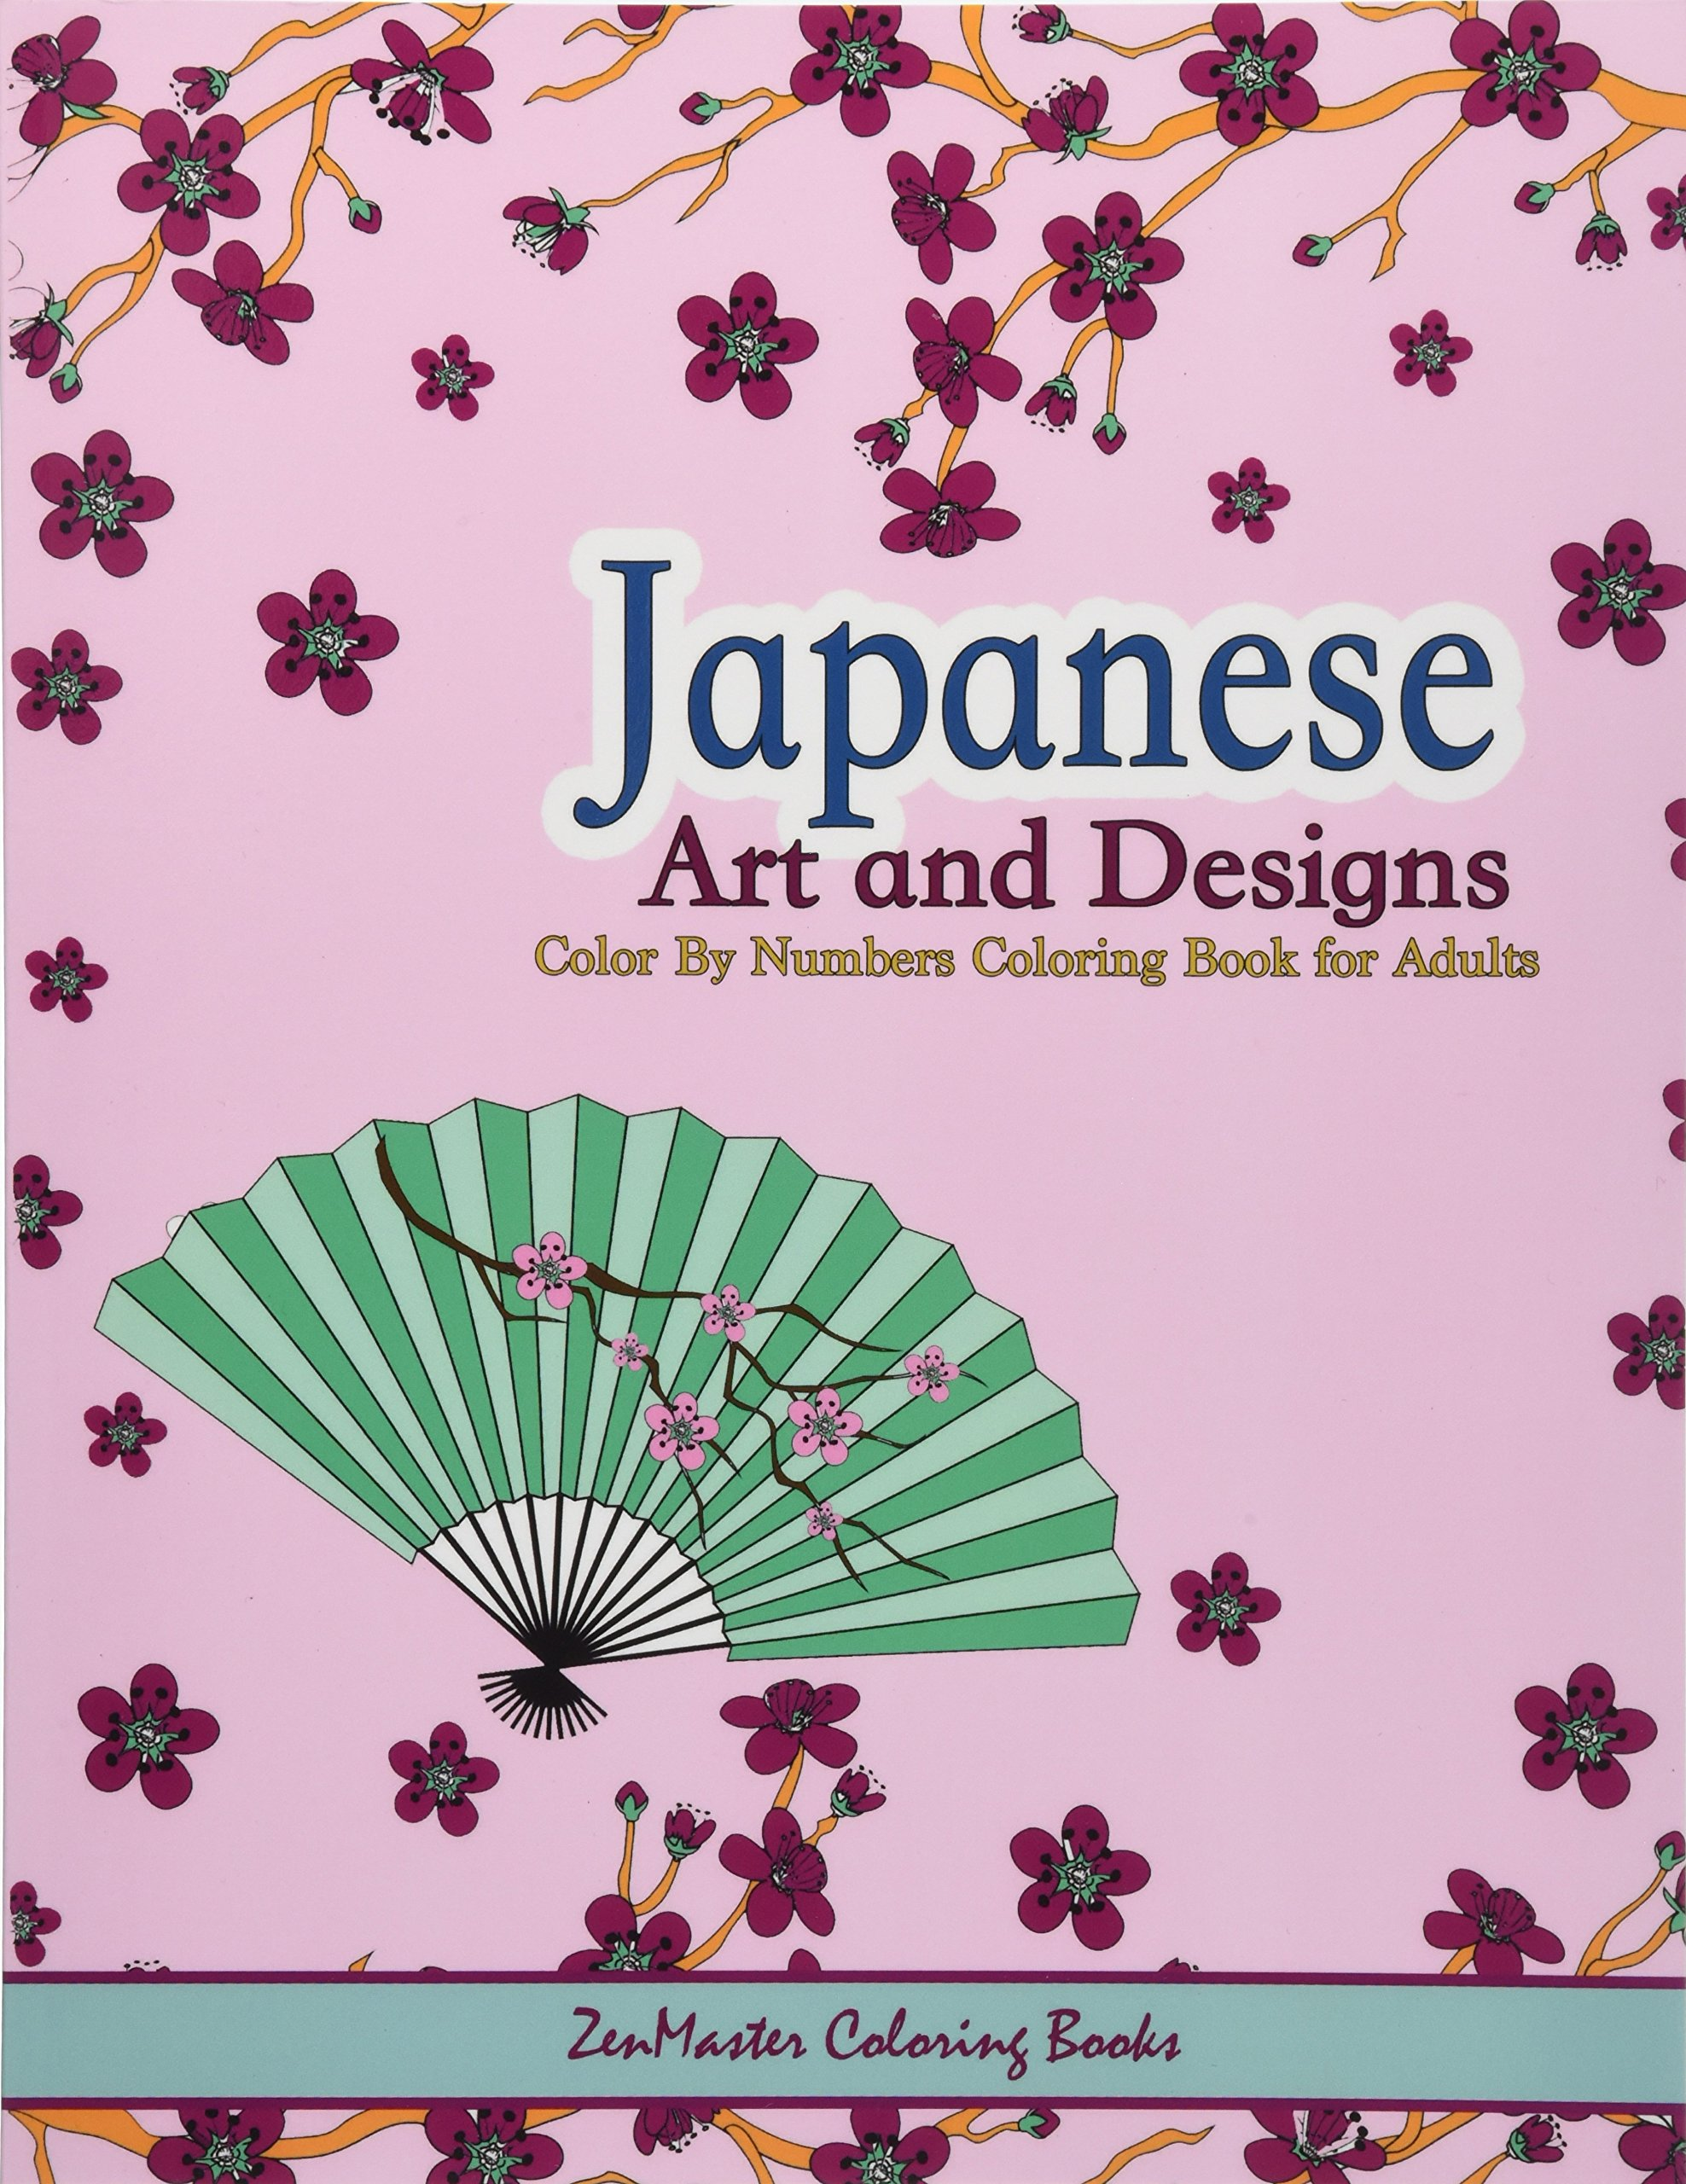 Japanese Art and Designs Color By Numbers Coloring Book for Adults: An Adult Color By Number Coloring Book Inspired By the Beautiful Culture of Japan ... Color By Number Coloring Books) (Volume 23) pdf